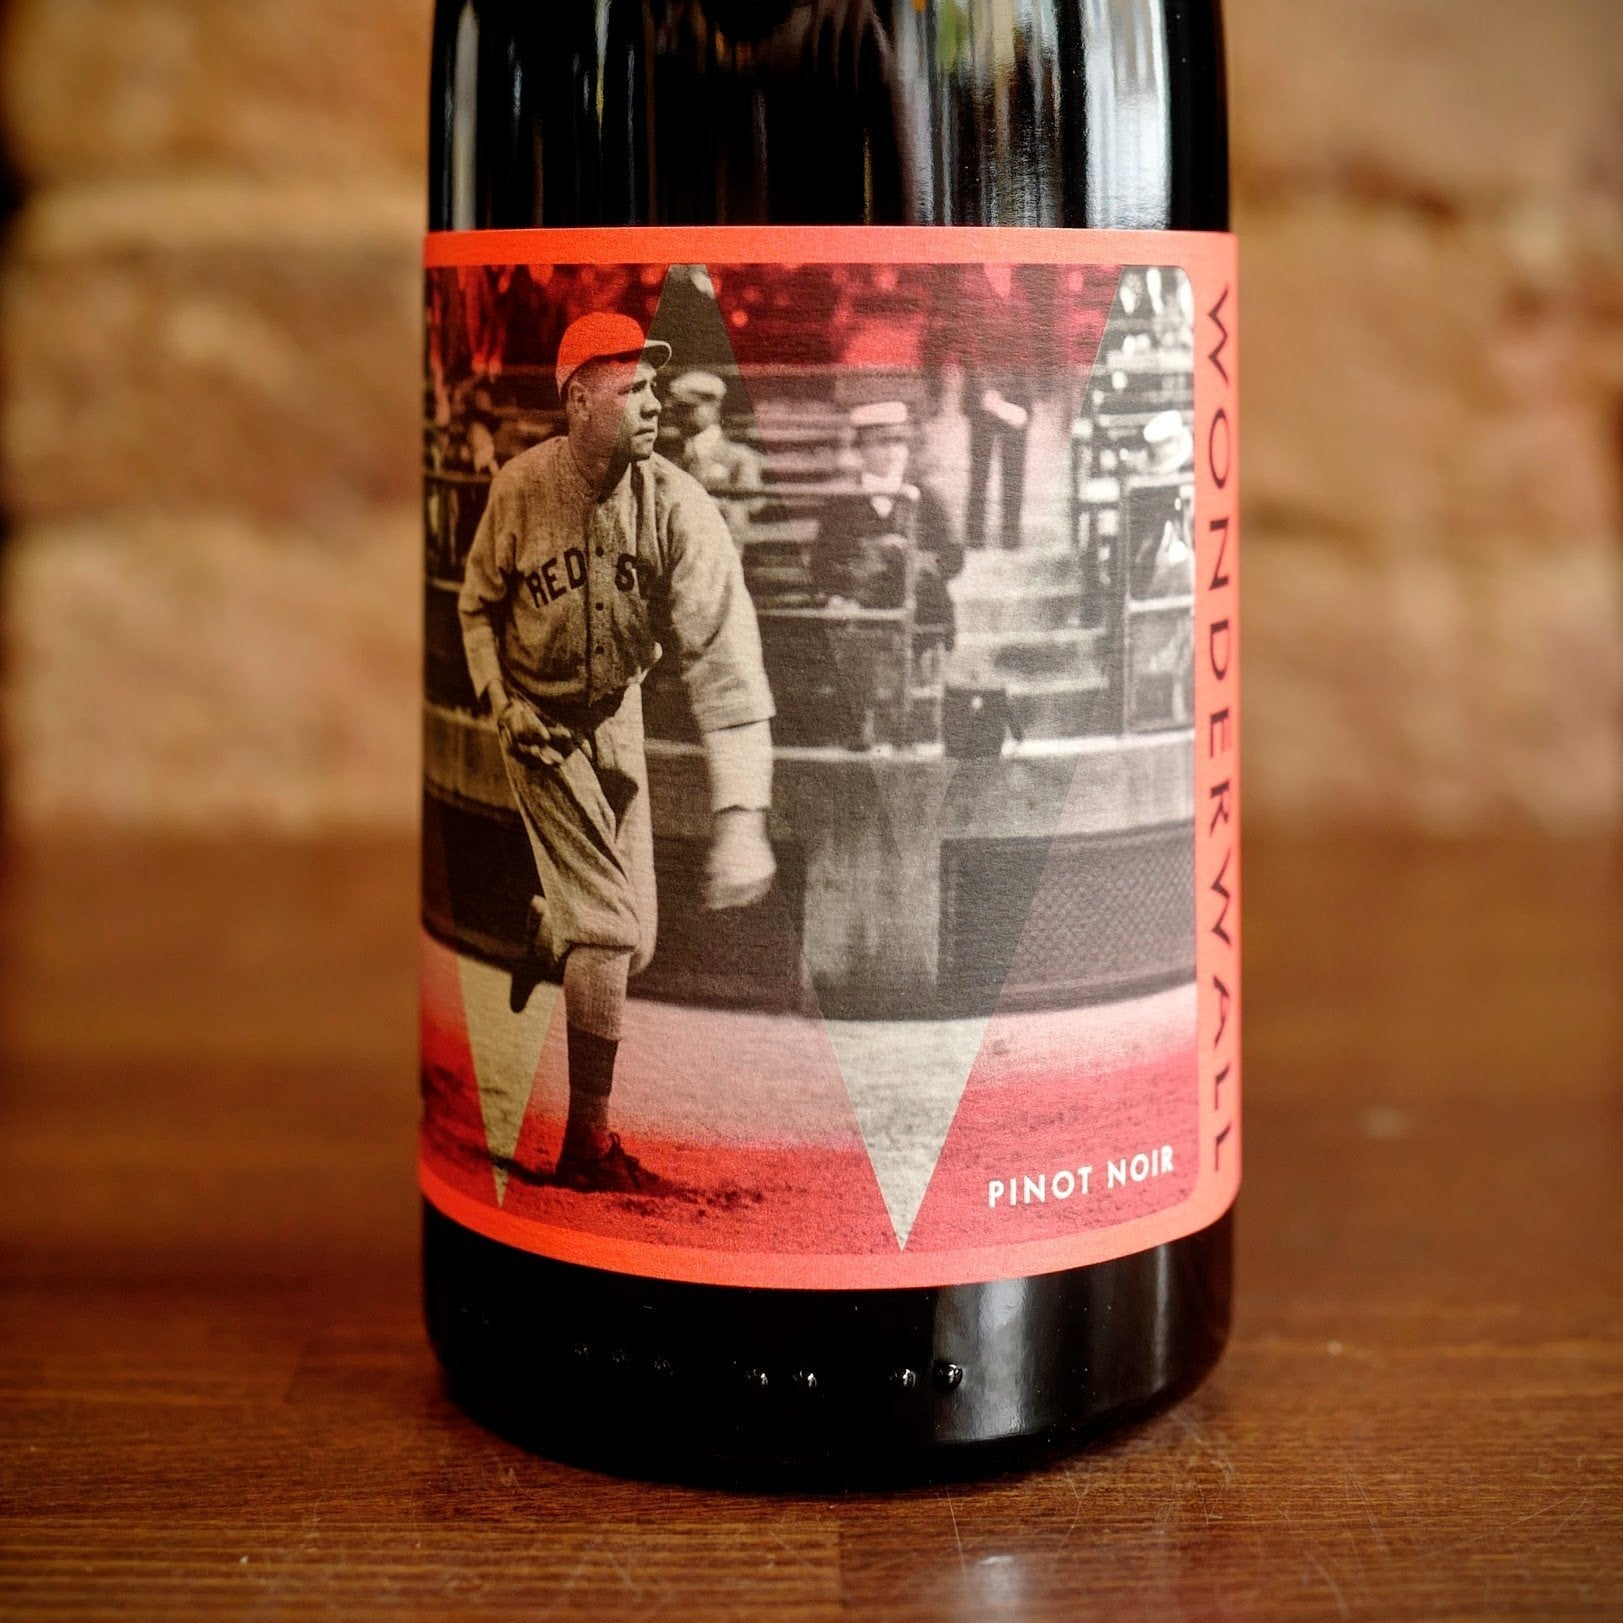 Wonderwall Pinot Noir, Field Recordings - Vindinista